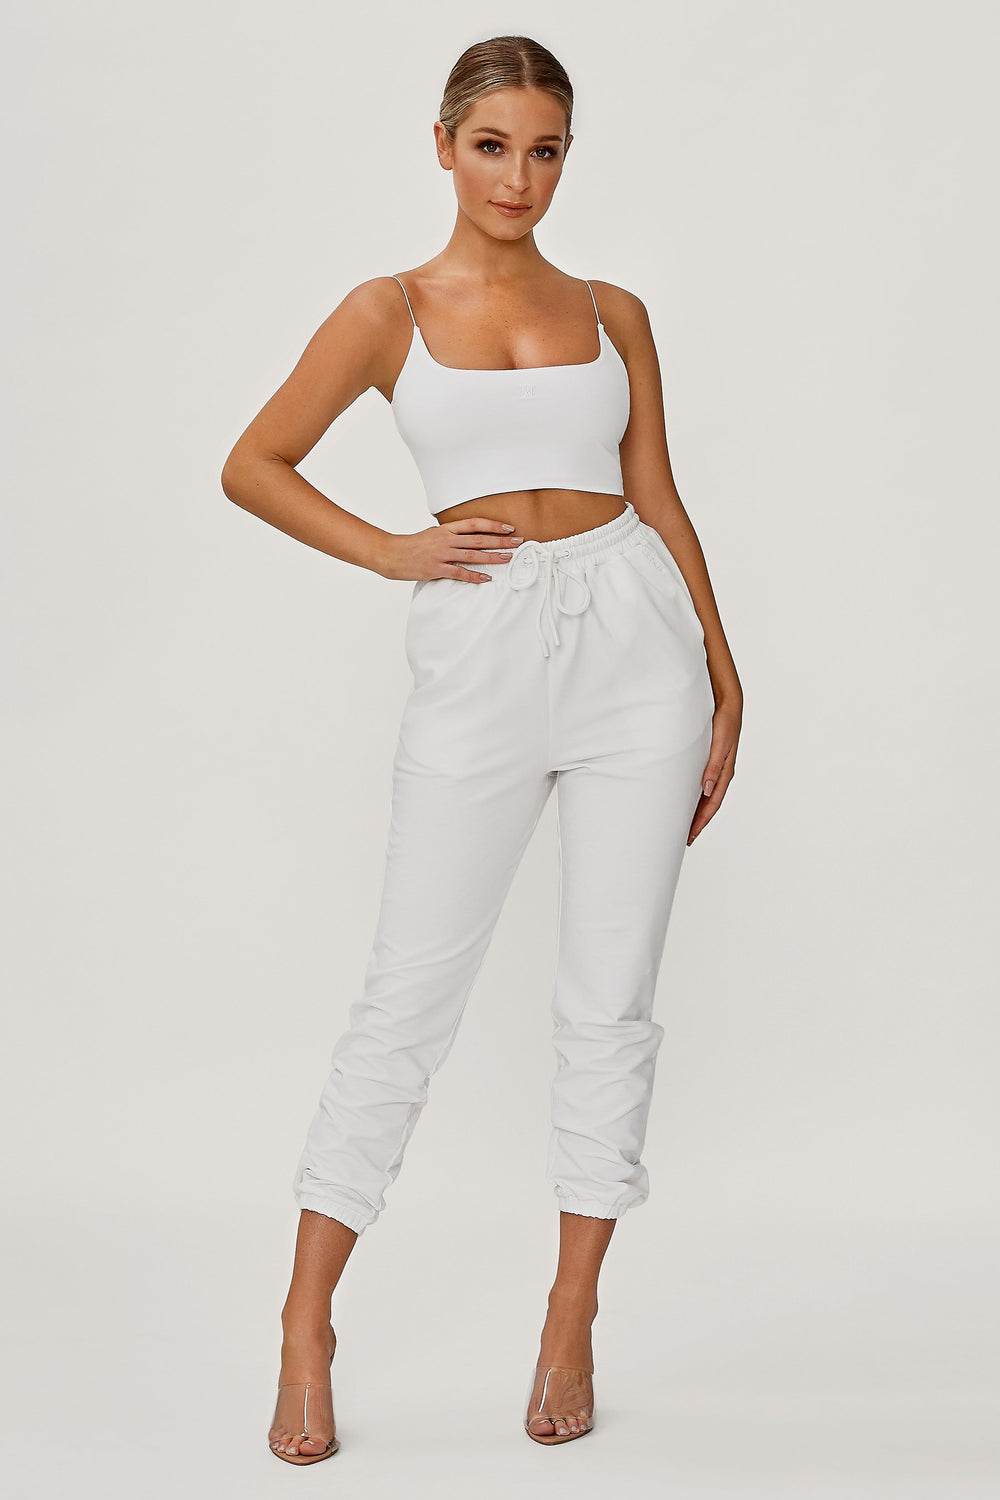 Kaiya Thin Strap Scoop Neck Crop Top - White - MESHKI